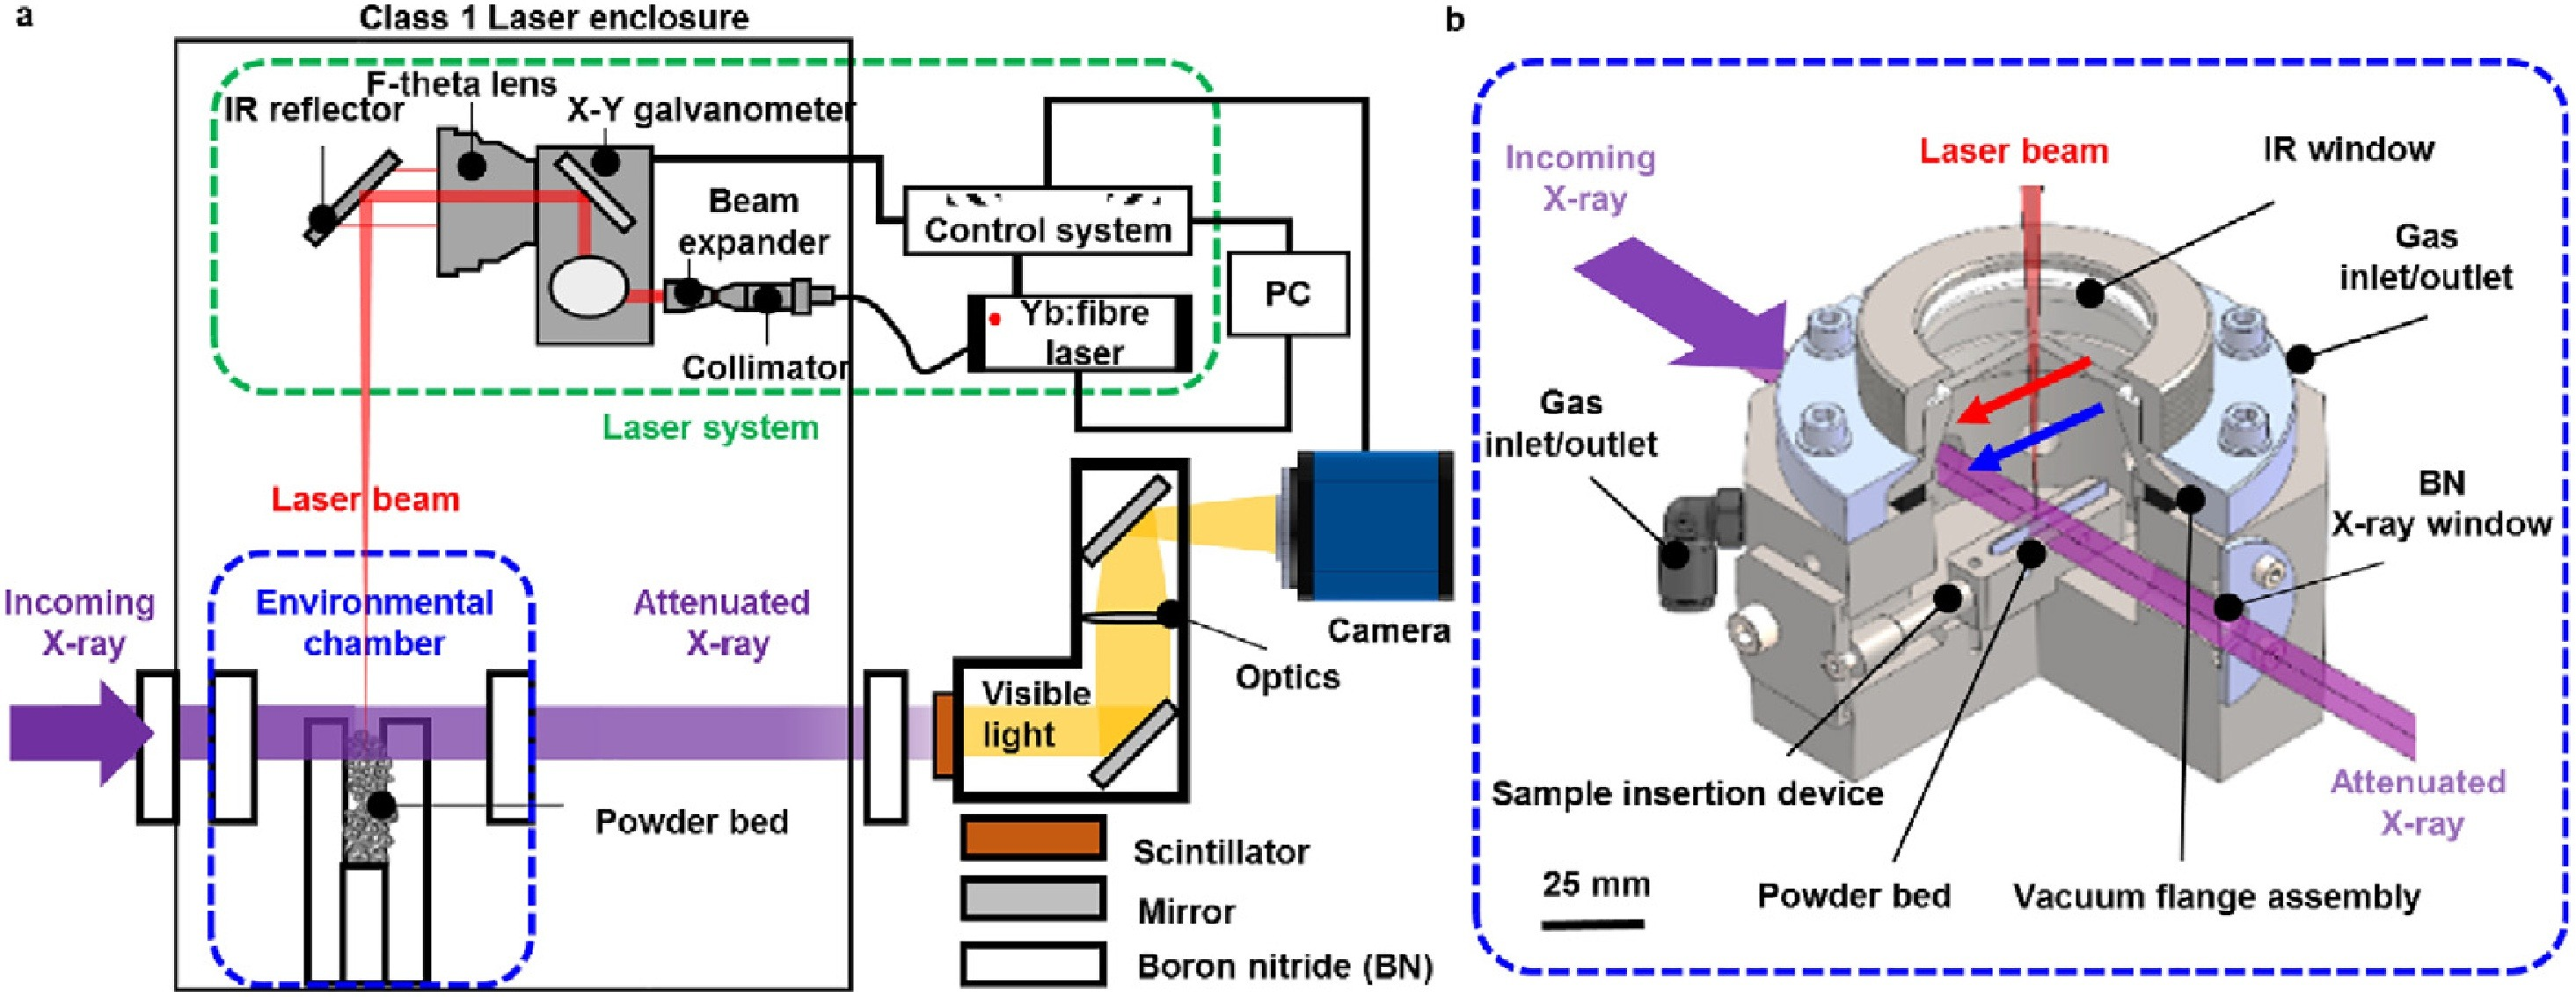 Schematic of the LAMPR mounted on a synchrotron beam line - Schematic of the LAMPR mounted on a synchrotron beam line. It comprises three sub-assemblies: One a stainless steel environmental build chamber, Two a laser system, and three a laser enclosure. A three-quarter section view of the environmental chamber. The purple arrows indicate the directions of the incoming X-ray beam and the attenuated X-ray beam. The red arrow indicates the scan direction of the laser beam, which moves parallel along the length of the powder bed. The blue arrow indicates the argon flow direction which is perpendicular to the X-ray beam and parallel to the laser beam.